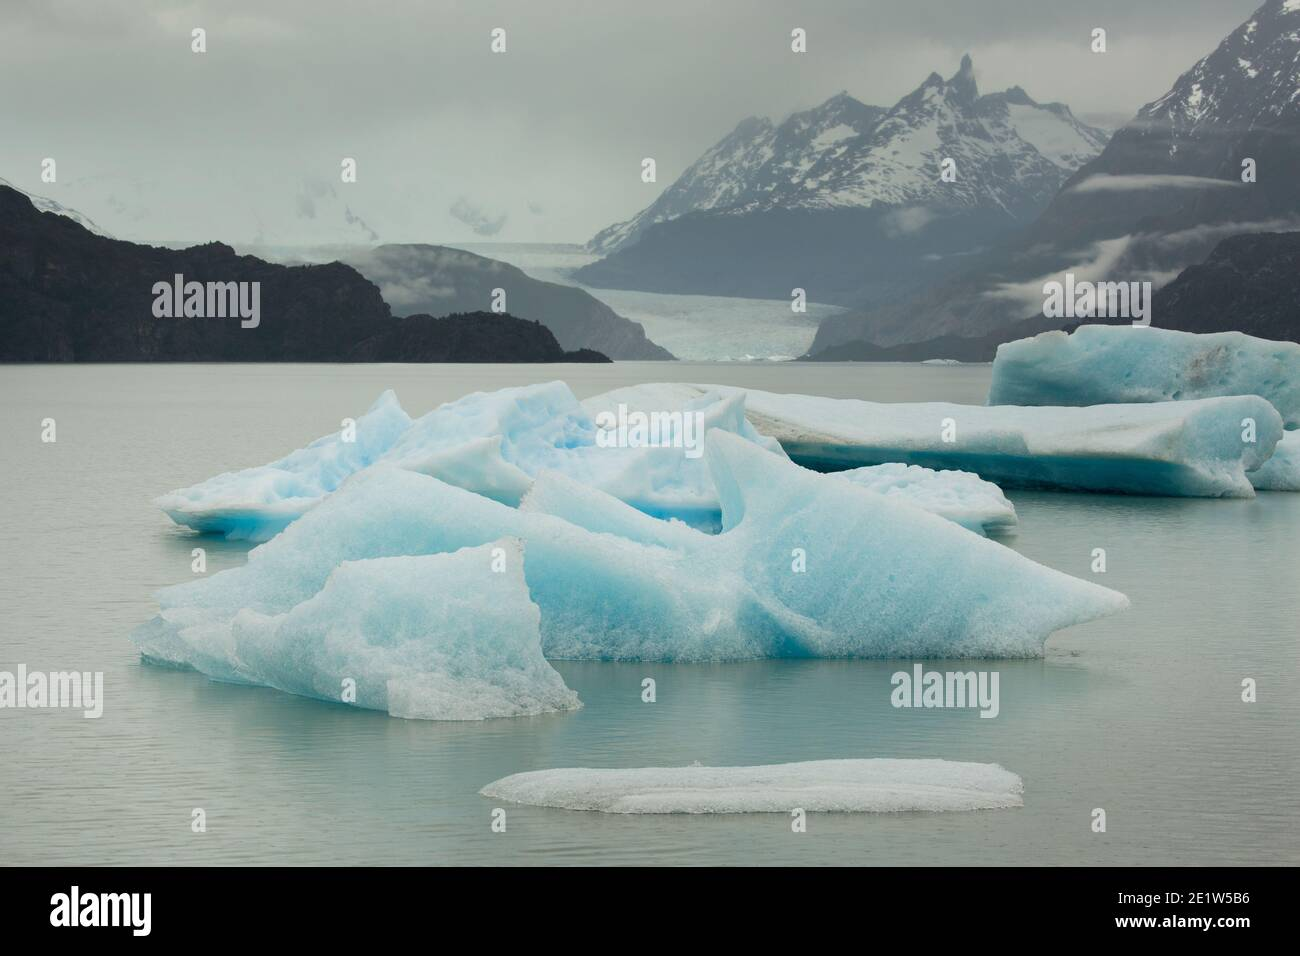 Icebergs calved from Glacier Grey float in the waters of Lago Grey, with the jagged peaks of Torres del Paine behind, Patagonia, Chile Stock Photo